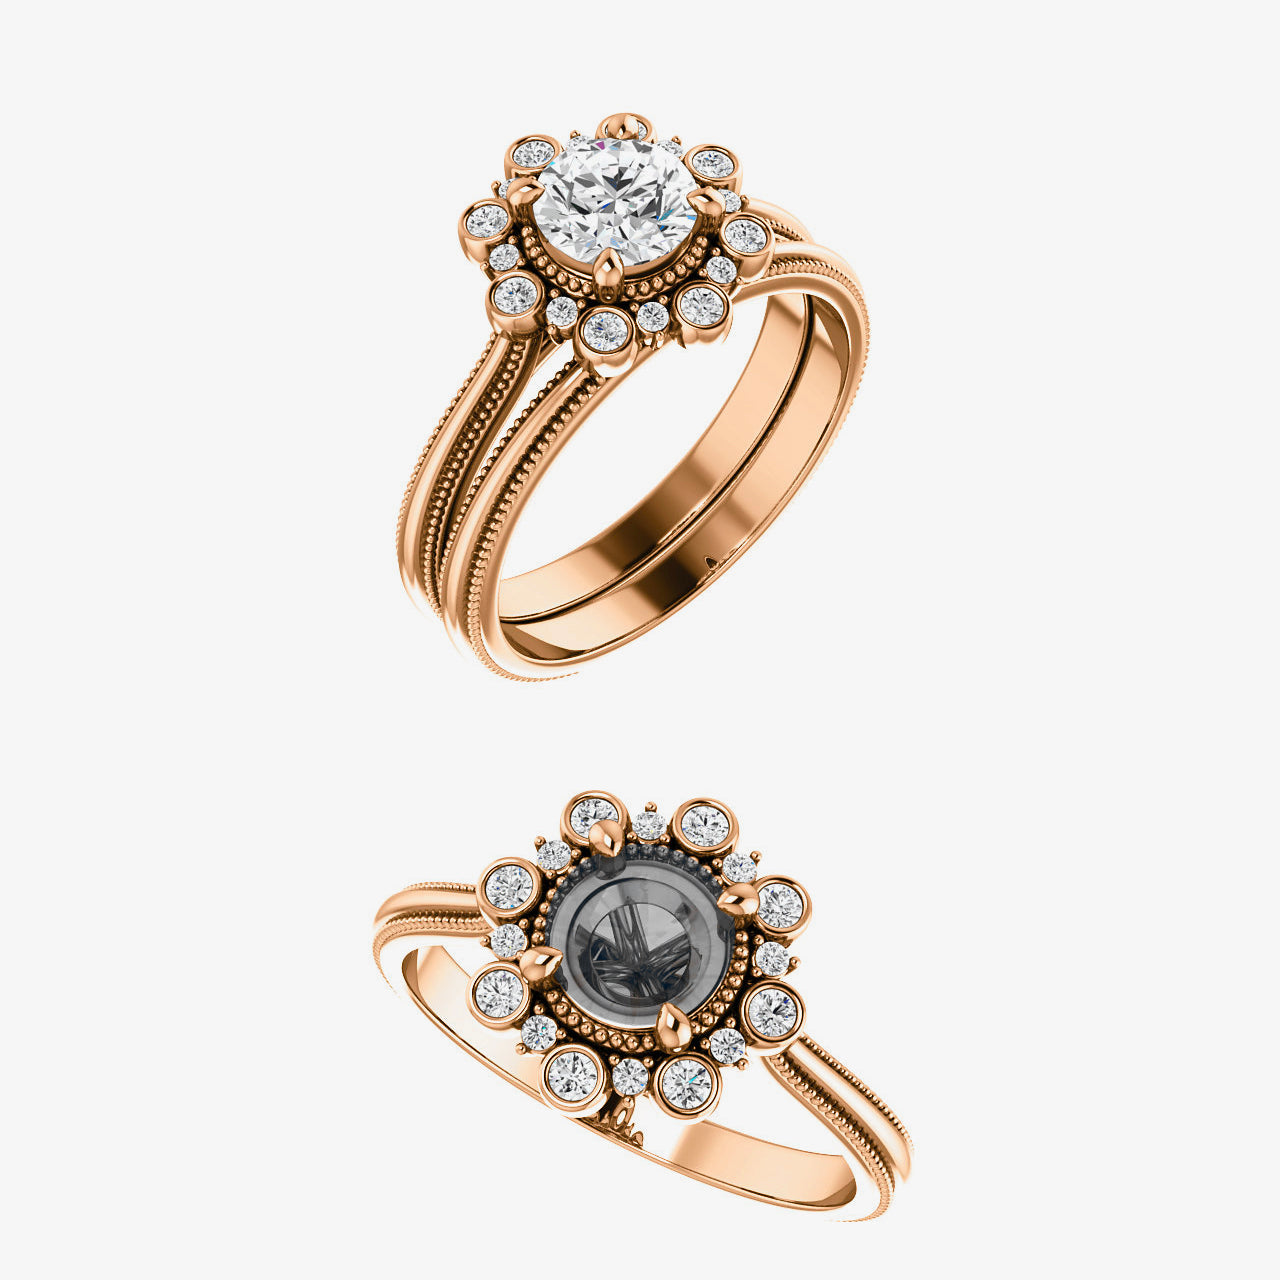 Presley Setting - Salt & Pepper Celestial Diamond Engagement Rings and Wedding Bands  by Midwinter Co.